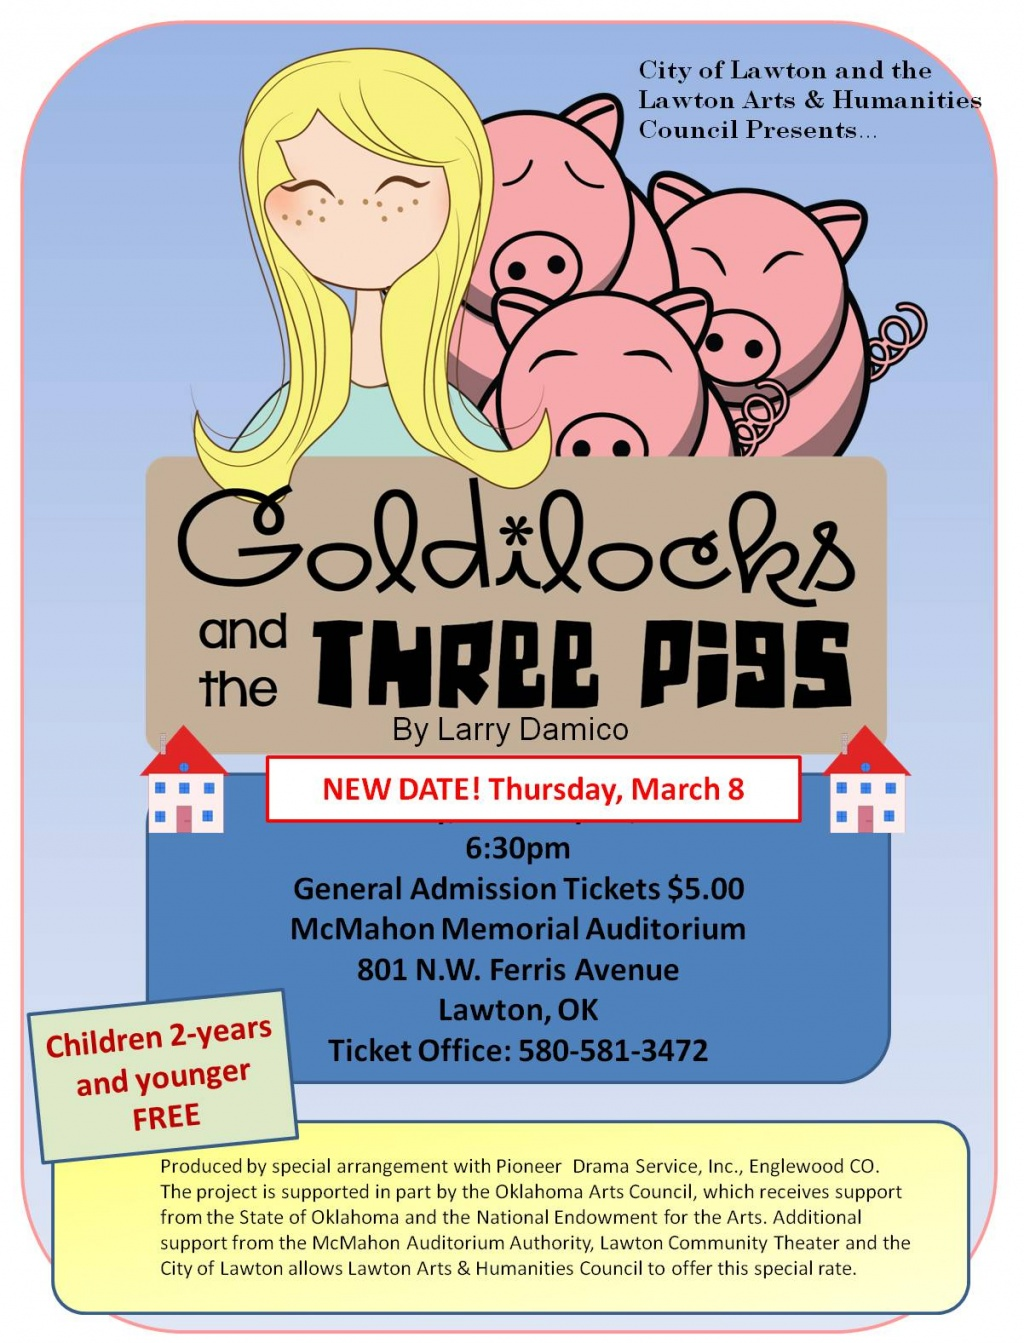 New date for Goldilocks and the Three Pigs